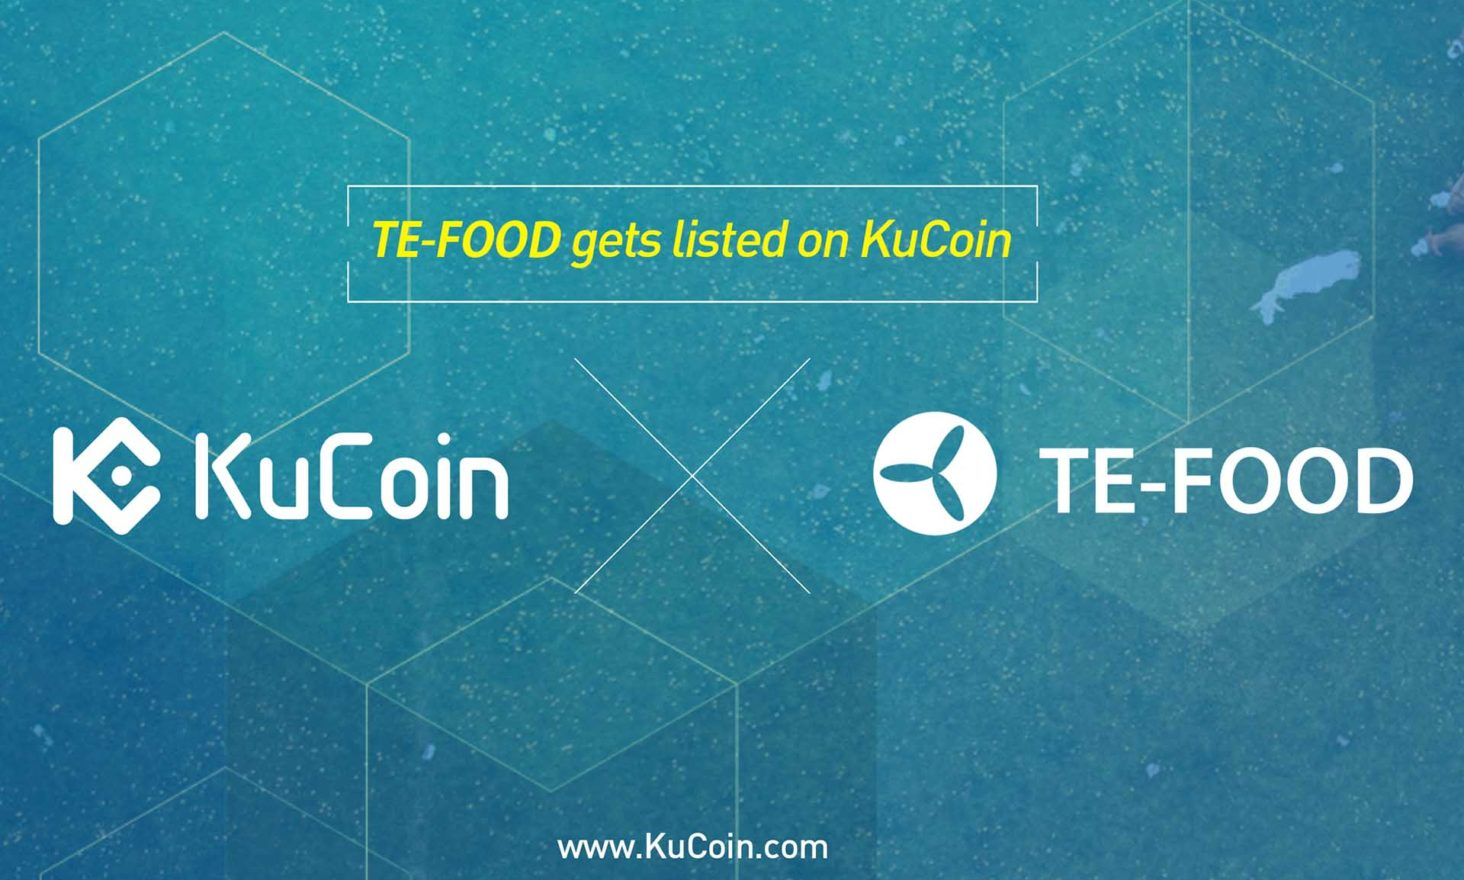 TE-FOOD (TFD) Gets Listed On KuCoin!